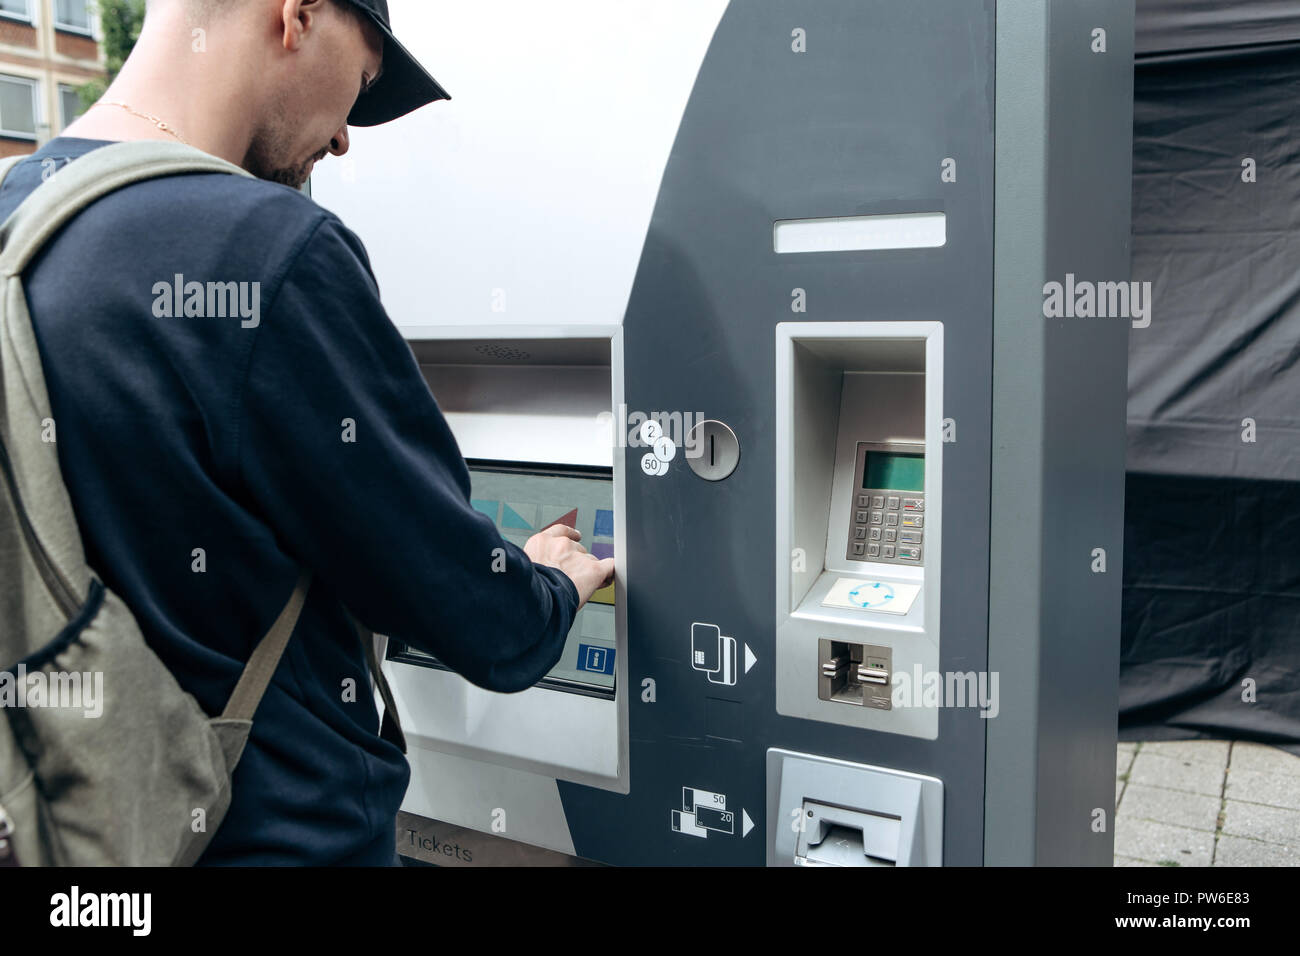 Tourist buys tickets for land or underground transport in Germany. Independent purchase of tickets for the tram, bus and train in a modern street machine. - Stock Image